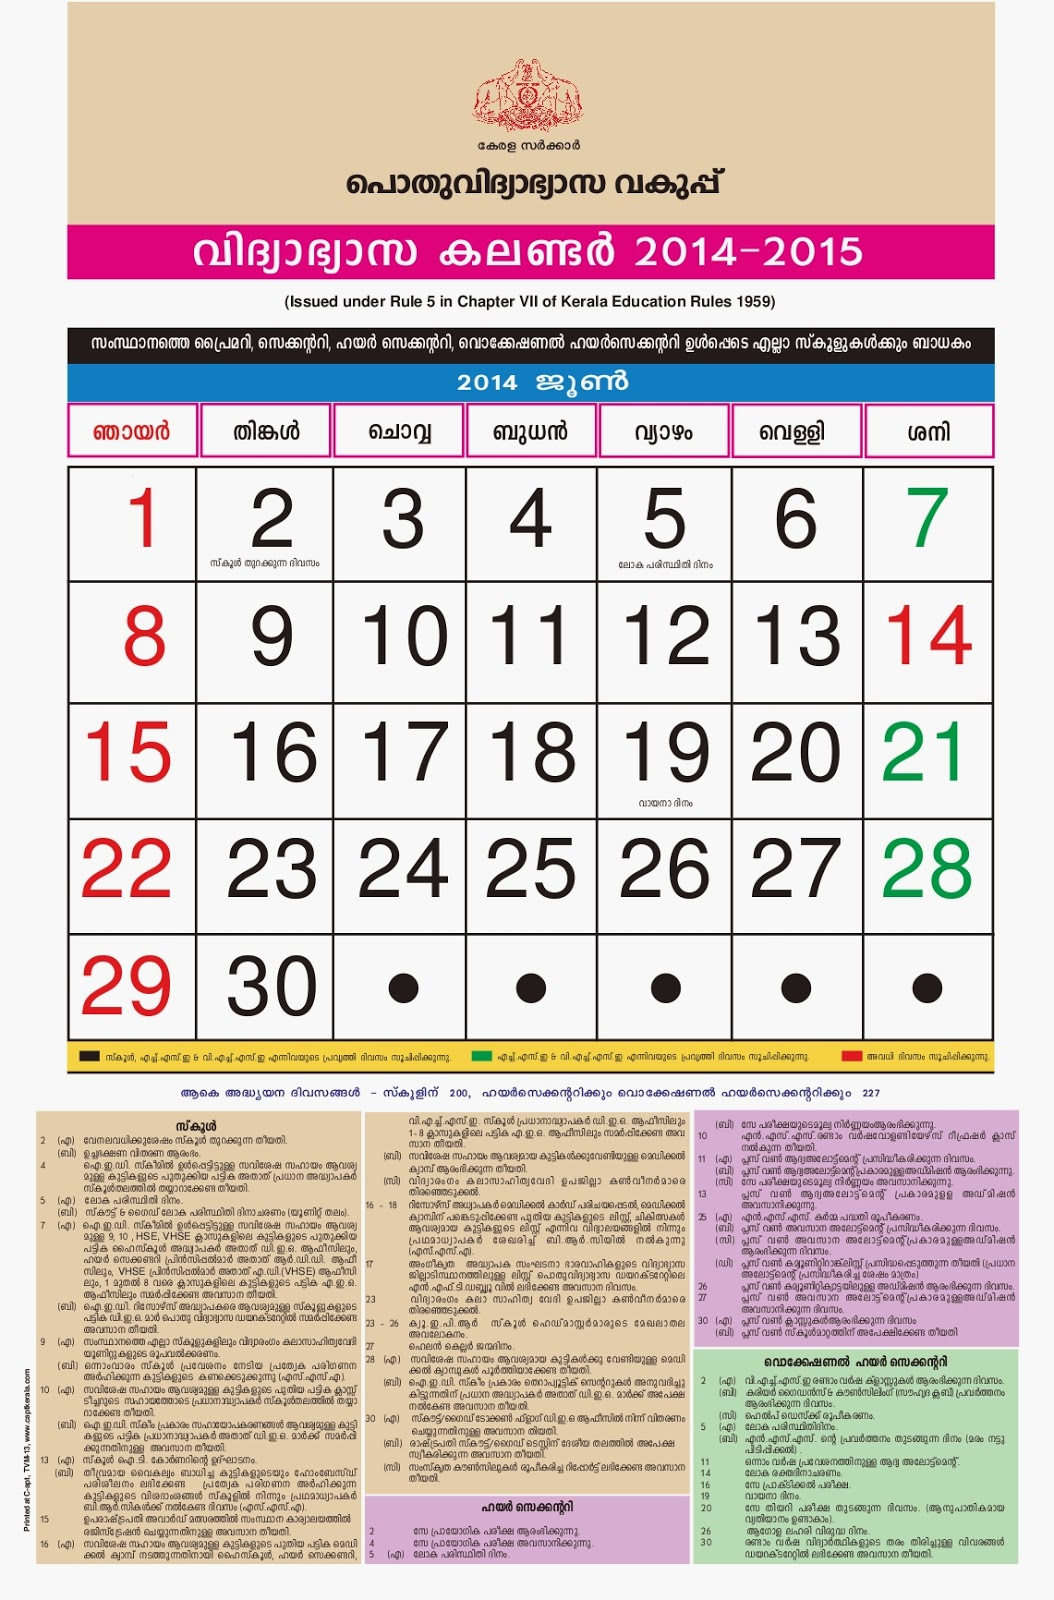 http://www.education.kerala.gov.in/downloads2014/announcement/edu_calendar_2014-15.pdf